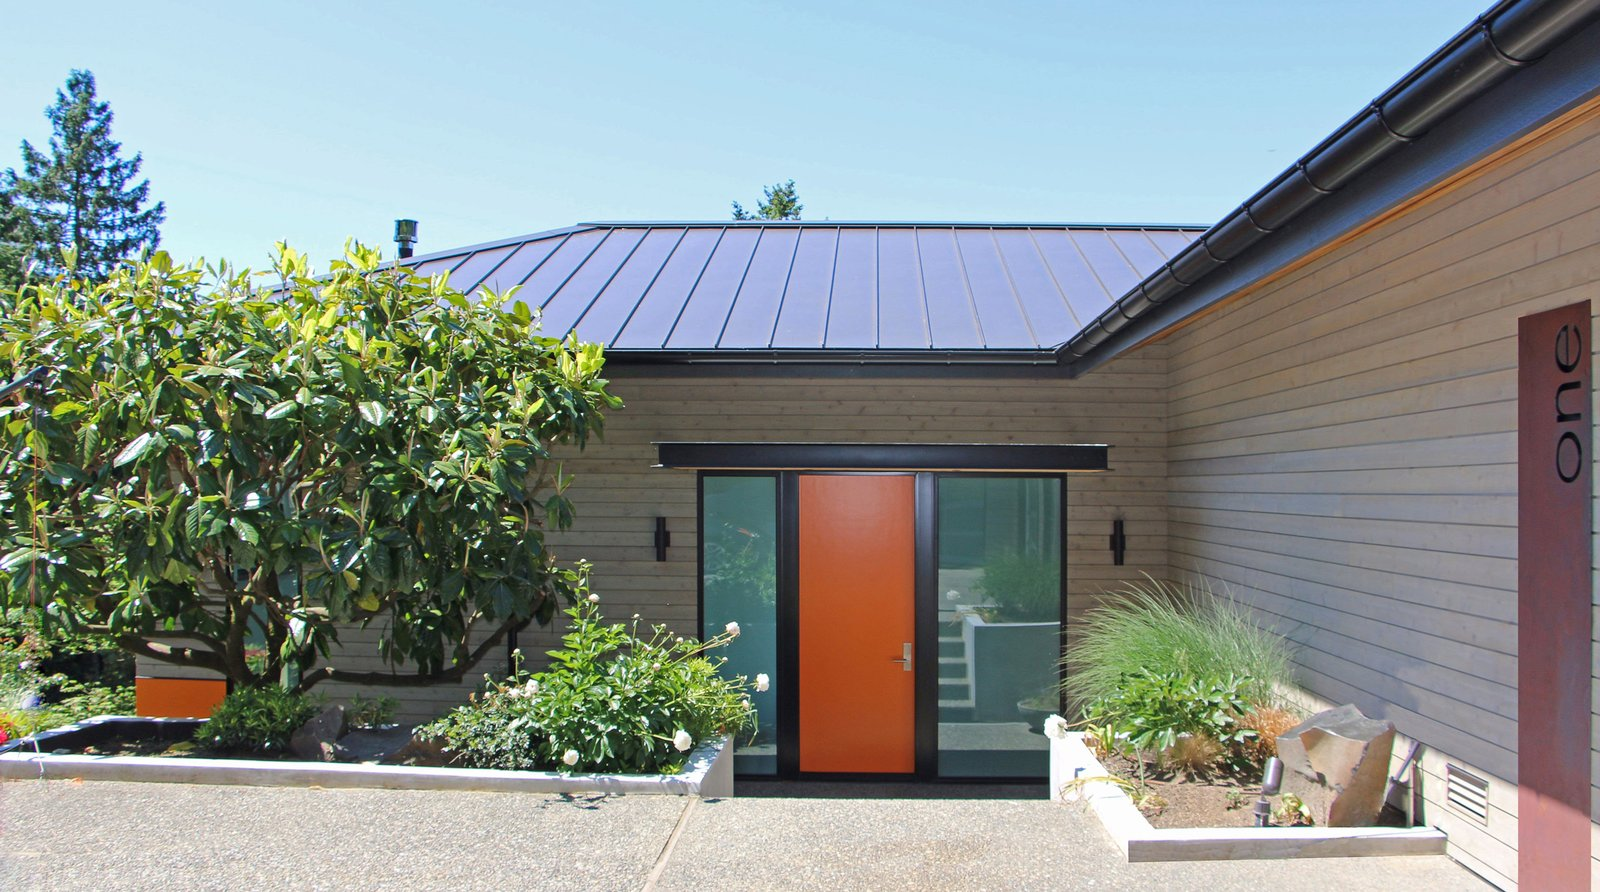 Brooks Front Entry Tagged: Exterior, House, Metal Roof Material, Wood Siding Material, and Hipped RoofLine.  Brooks Remodel